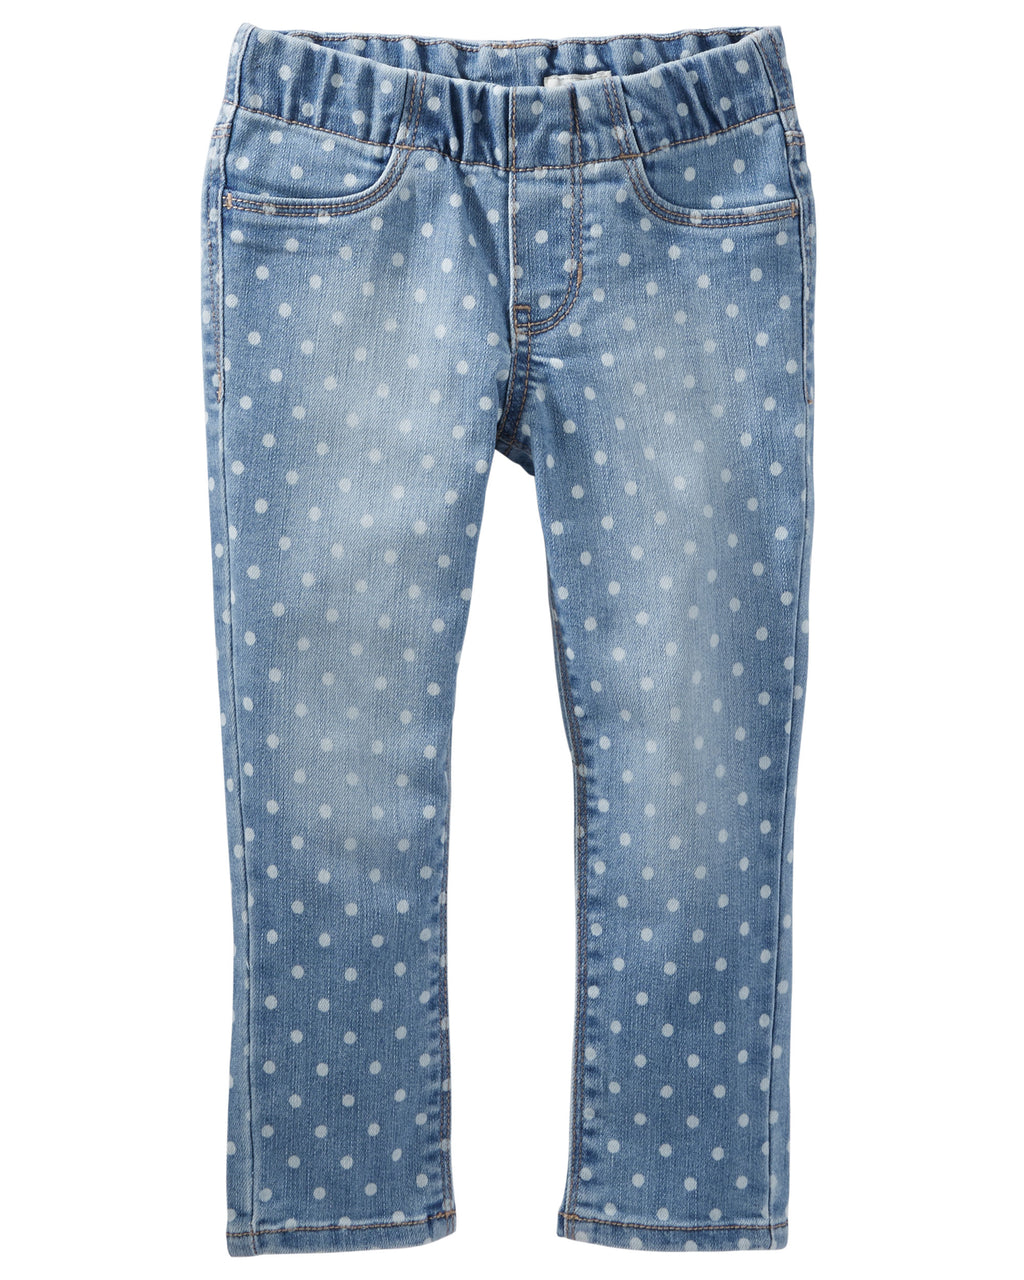 Jeggings OSHKOSH Polka Dot Lunares